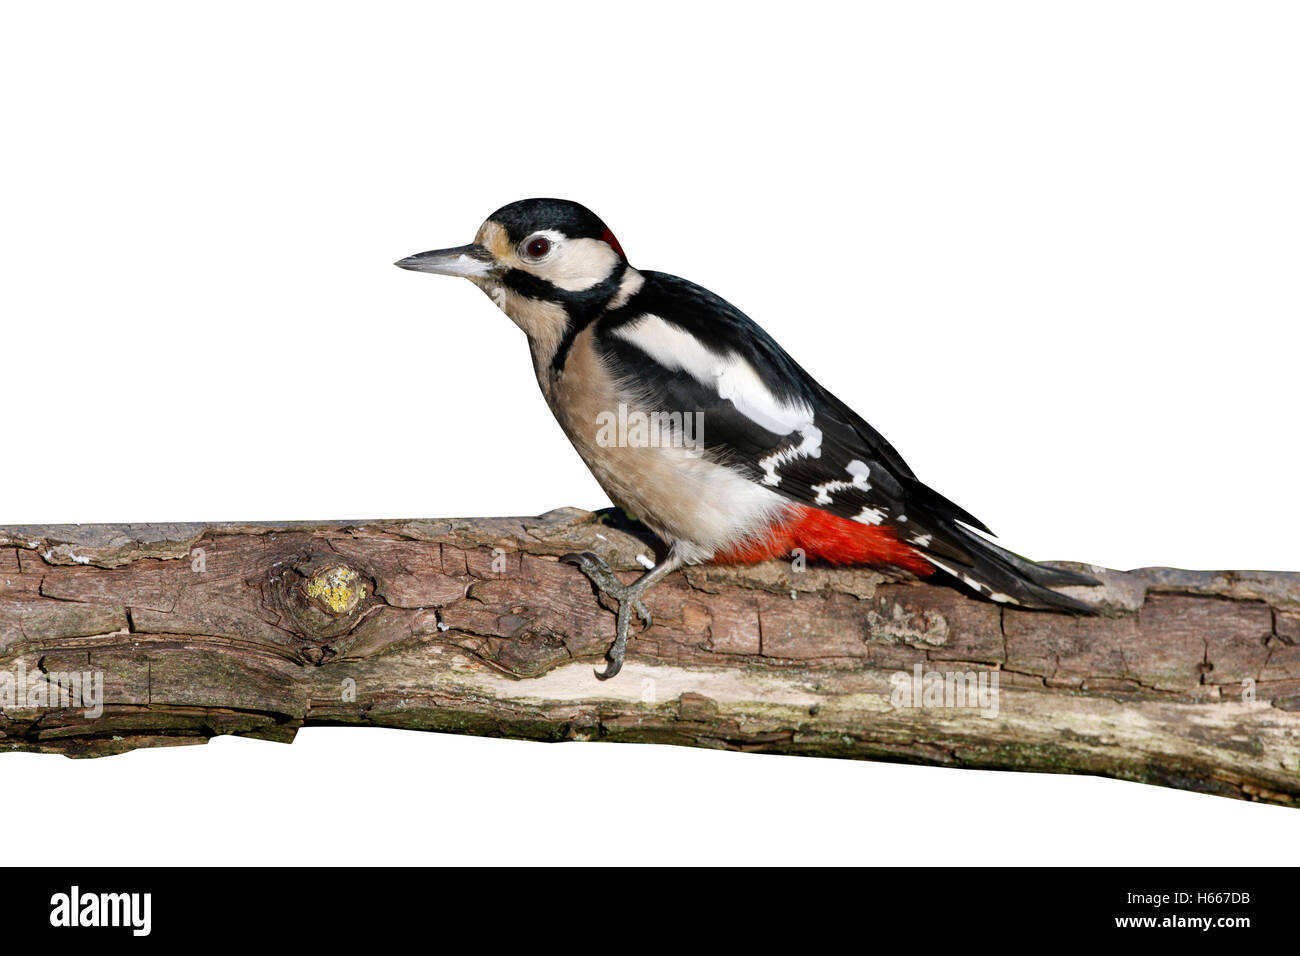 Great spotted woodpecker, Dendrocopos major, male, Midlands, winter - Stock Image